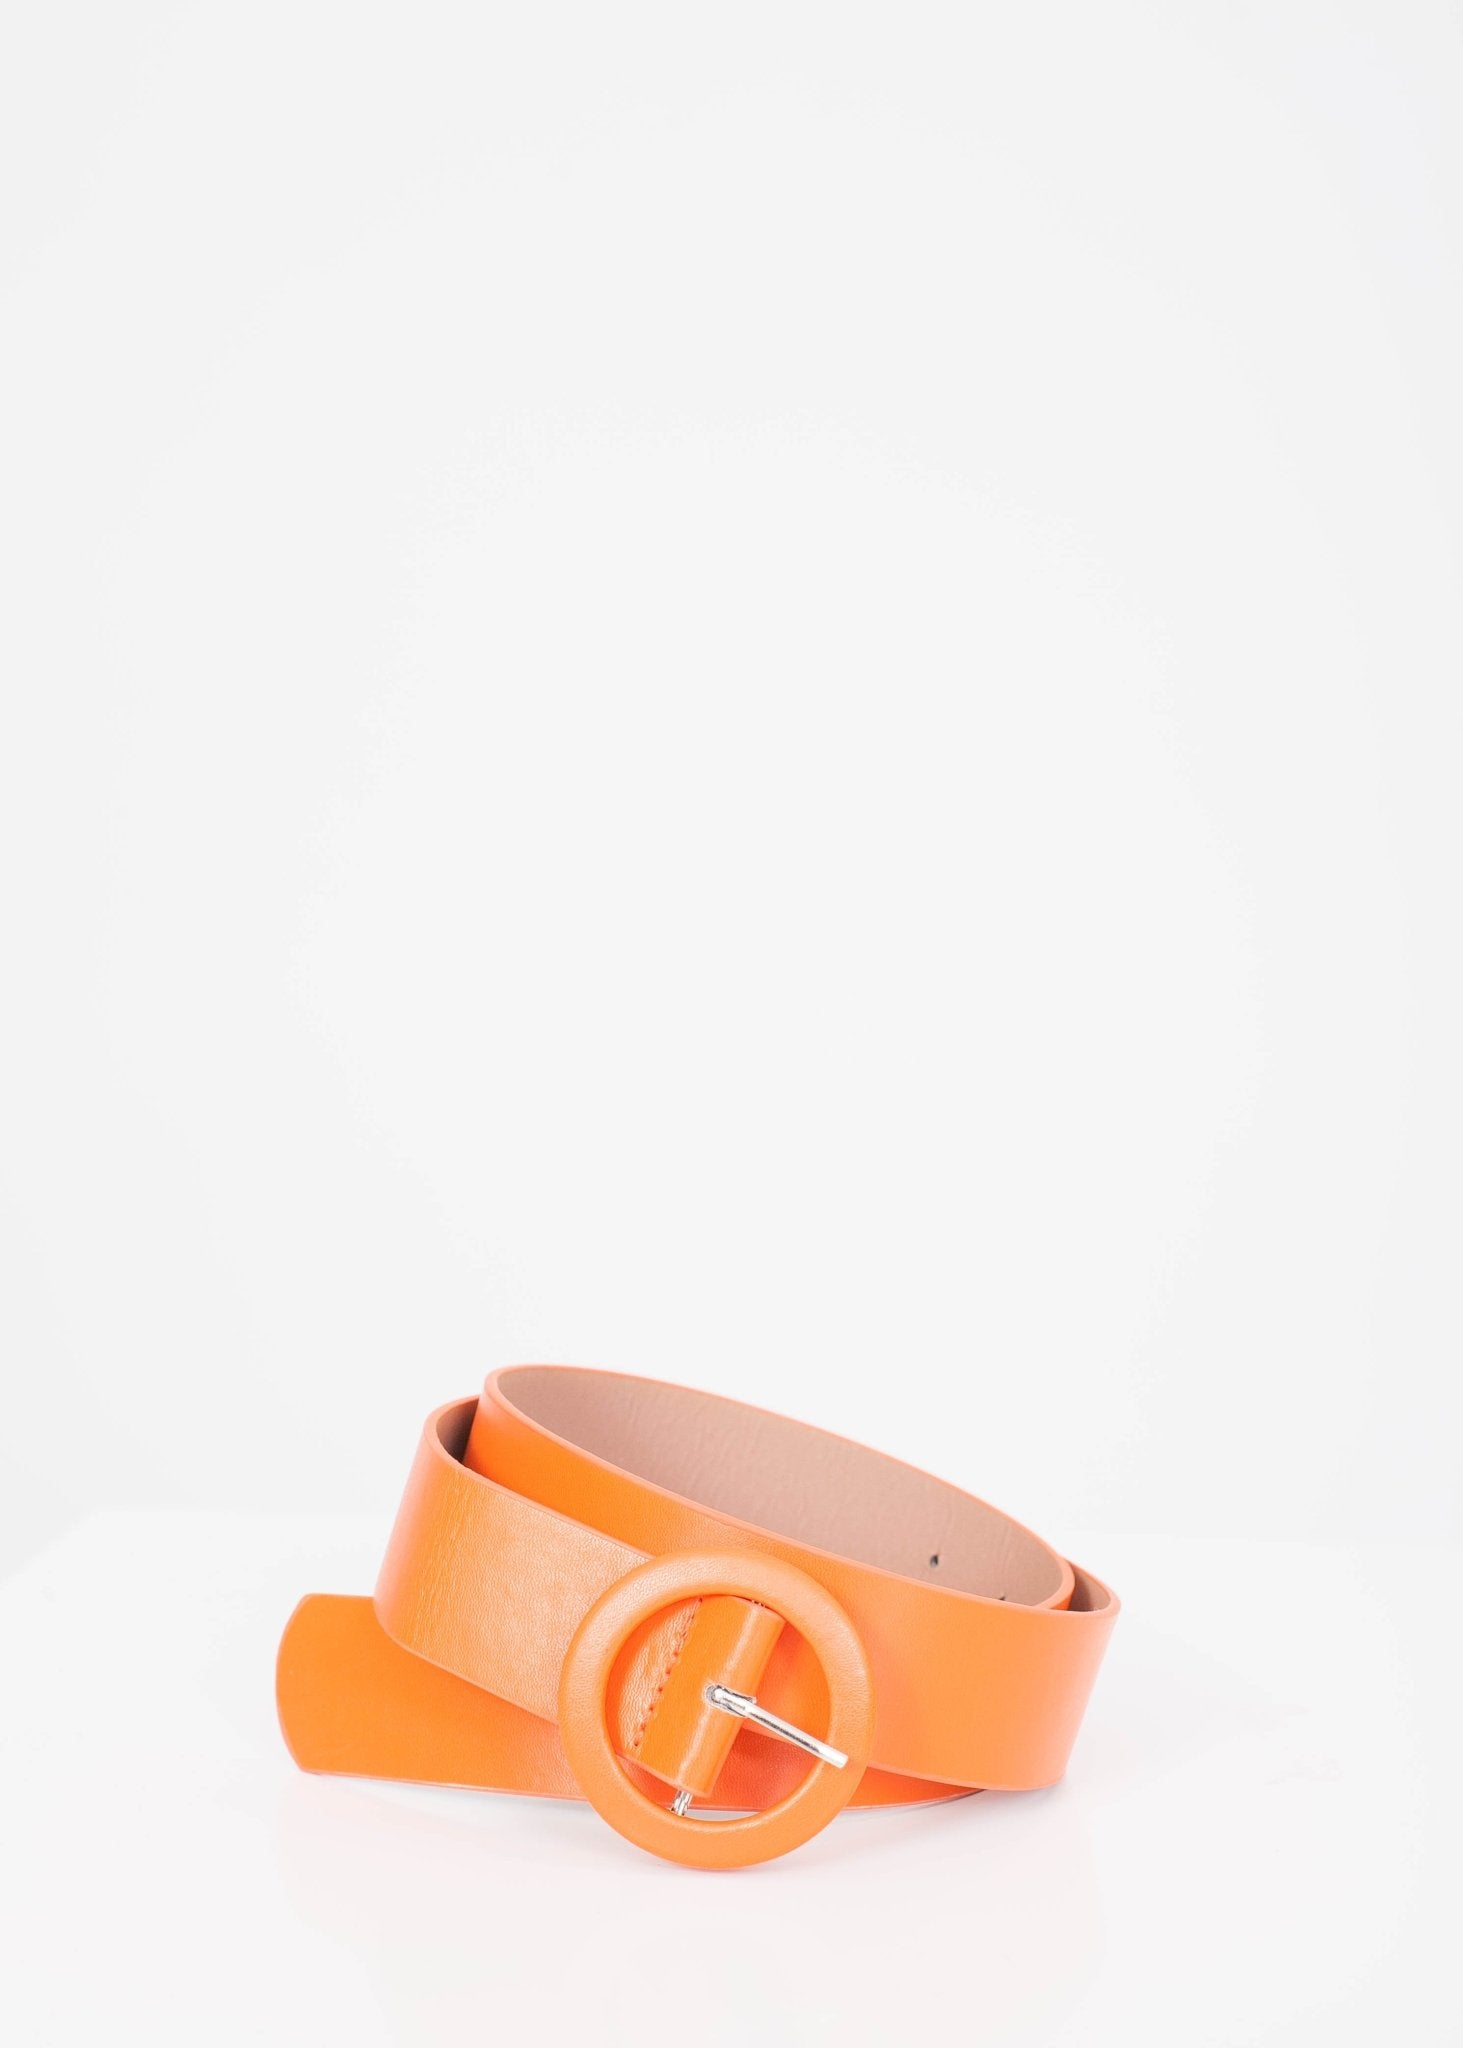 Frankie Orange Belt - The Walk in Wardrobe